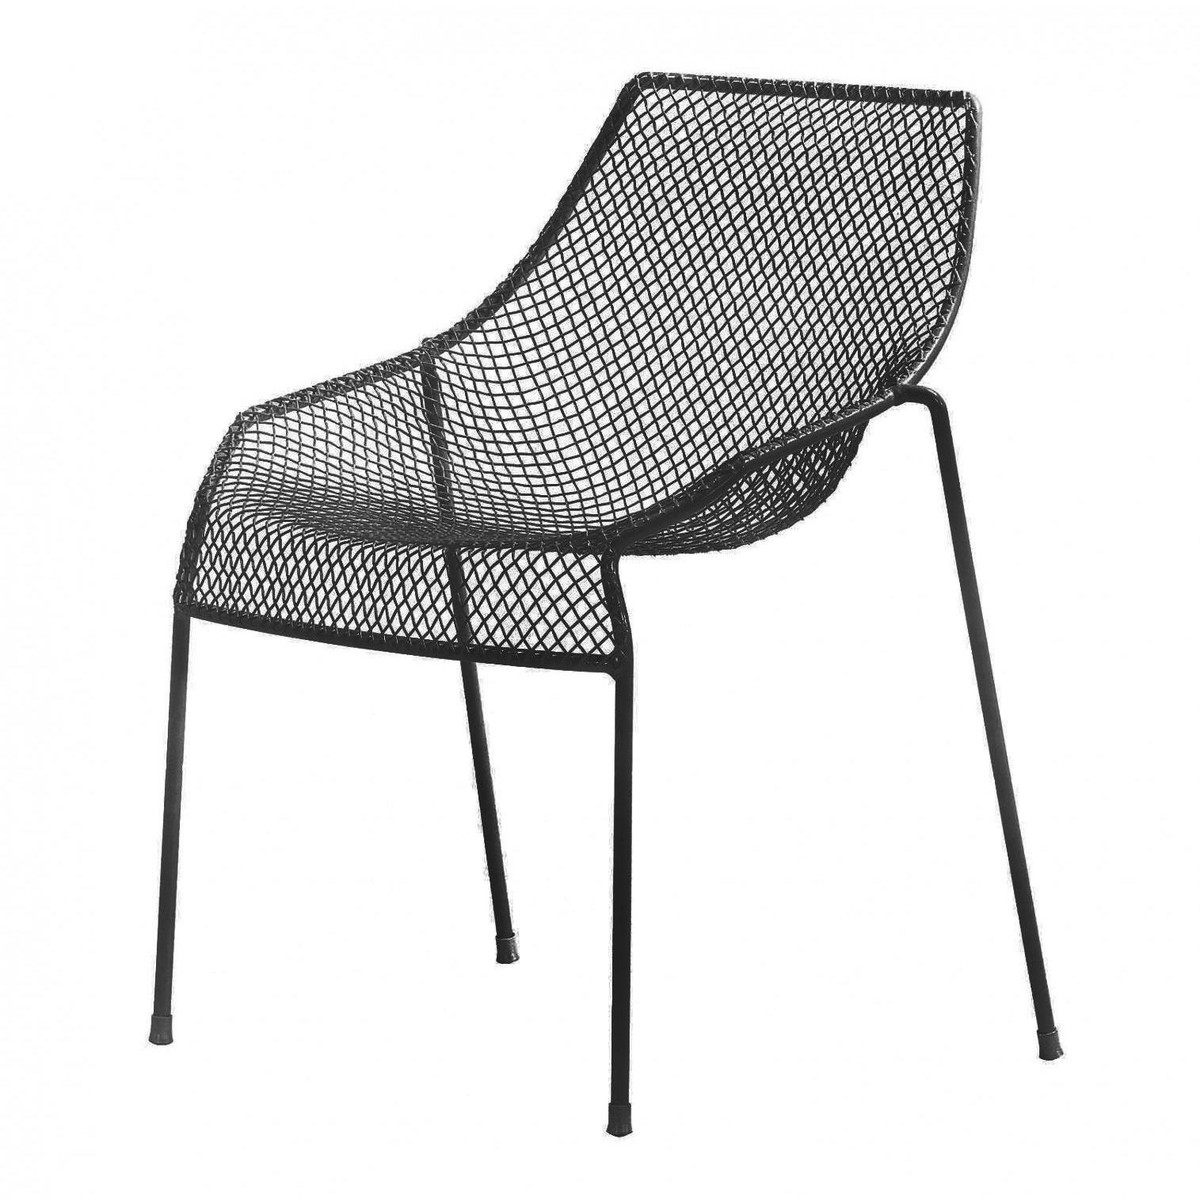 Fabulous Cielo Contemporary Dining Chair Couture Outdoor Gmtry Best Dining Table And Chair Ideas Images Gmtryco